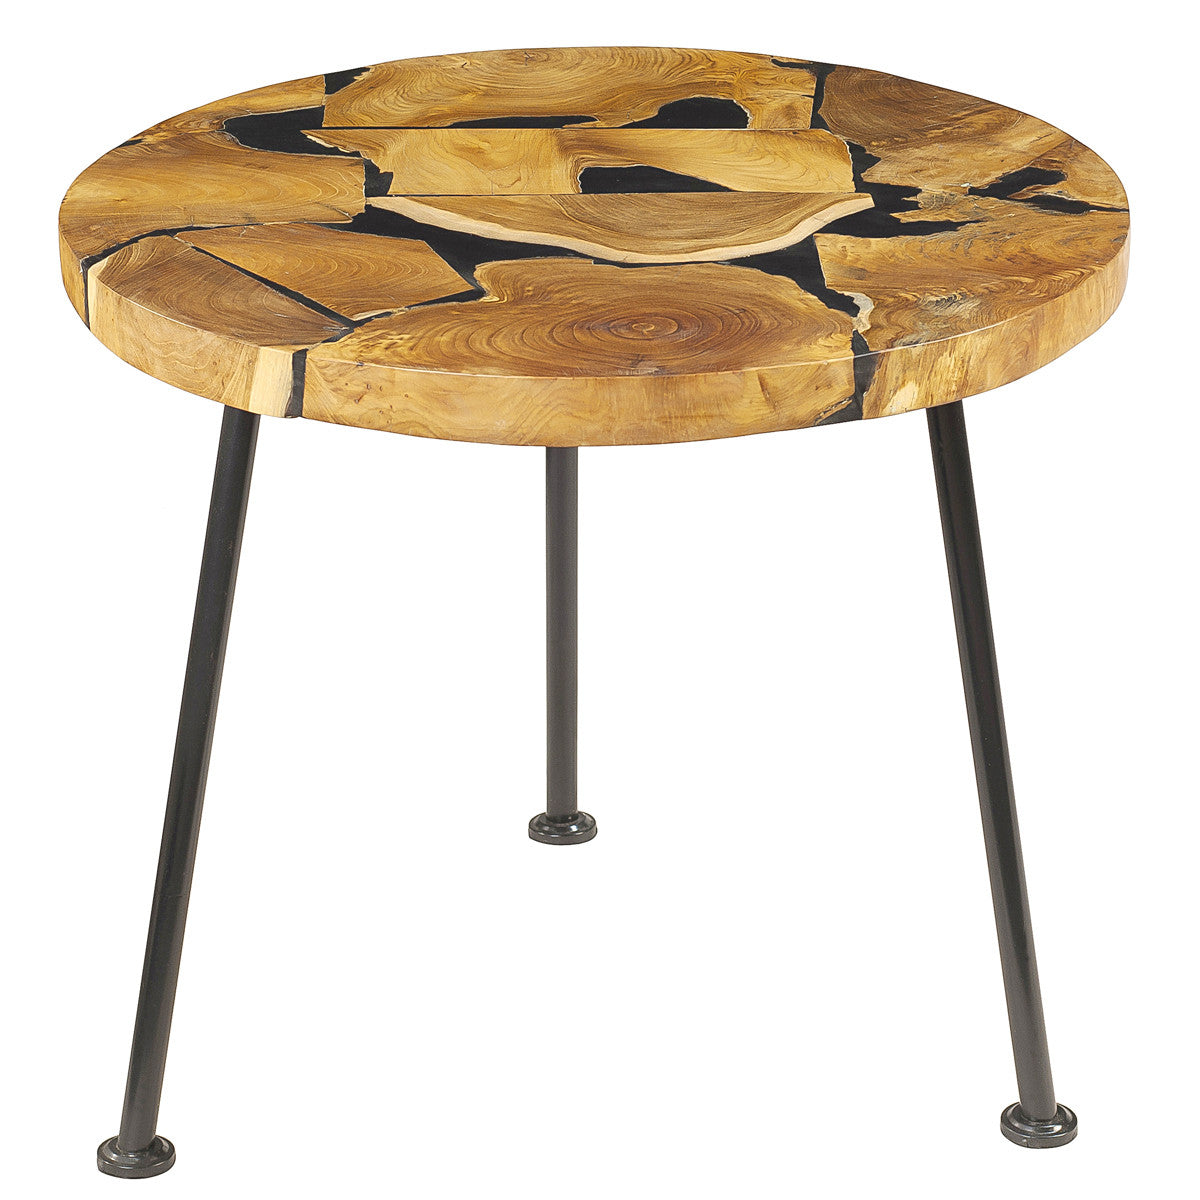 Round Coffee Table With Metal Legs: Nadine Resin Wood Round Coffee Table With Metal Legs